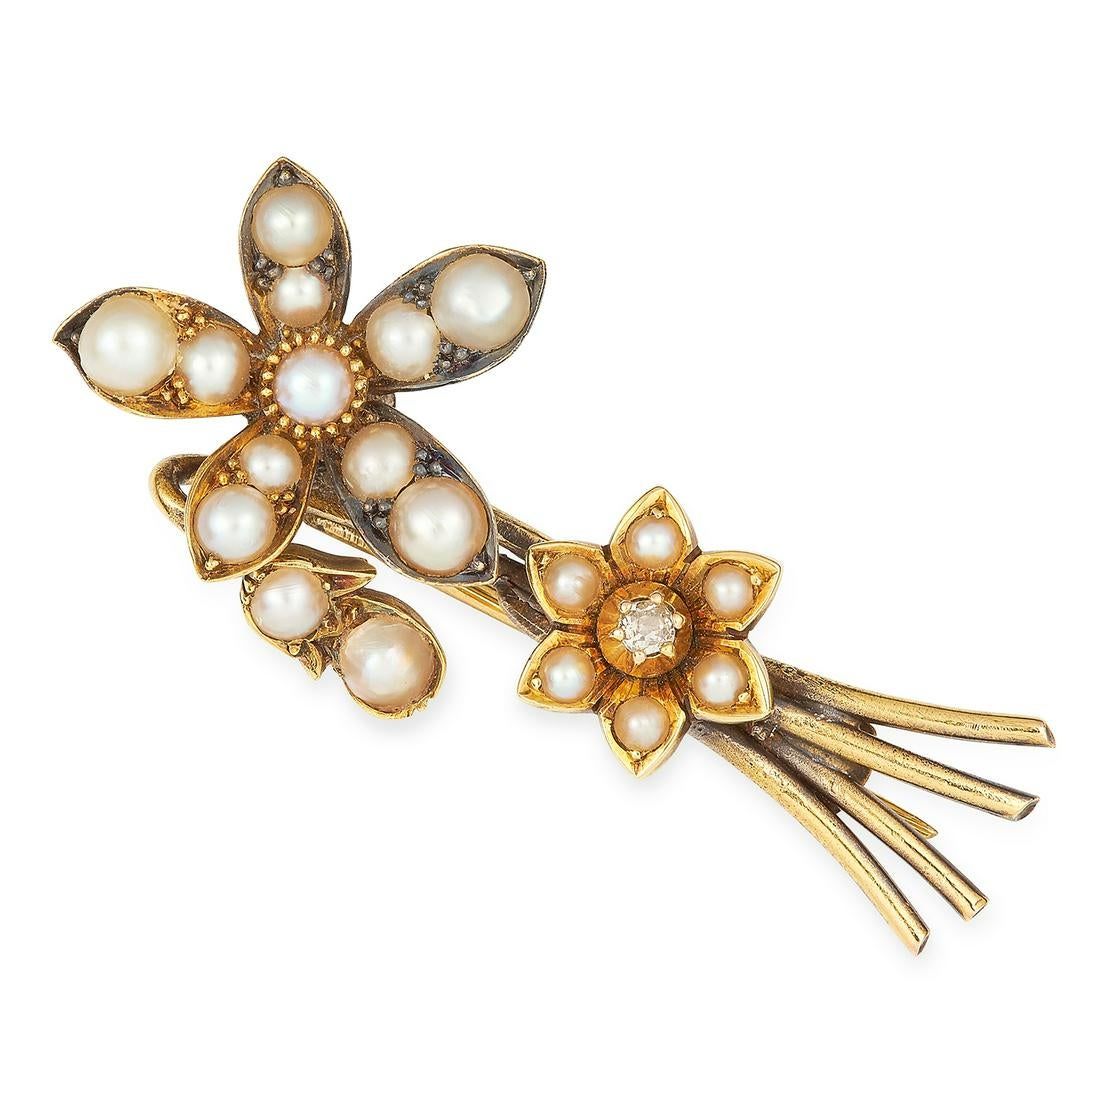 Los 57 - ANTIQUE GEORGIAN PEARL AND DIAMOND EN TREMBLANT FLOWER SPRAY BROOCH set with seed pearls and an